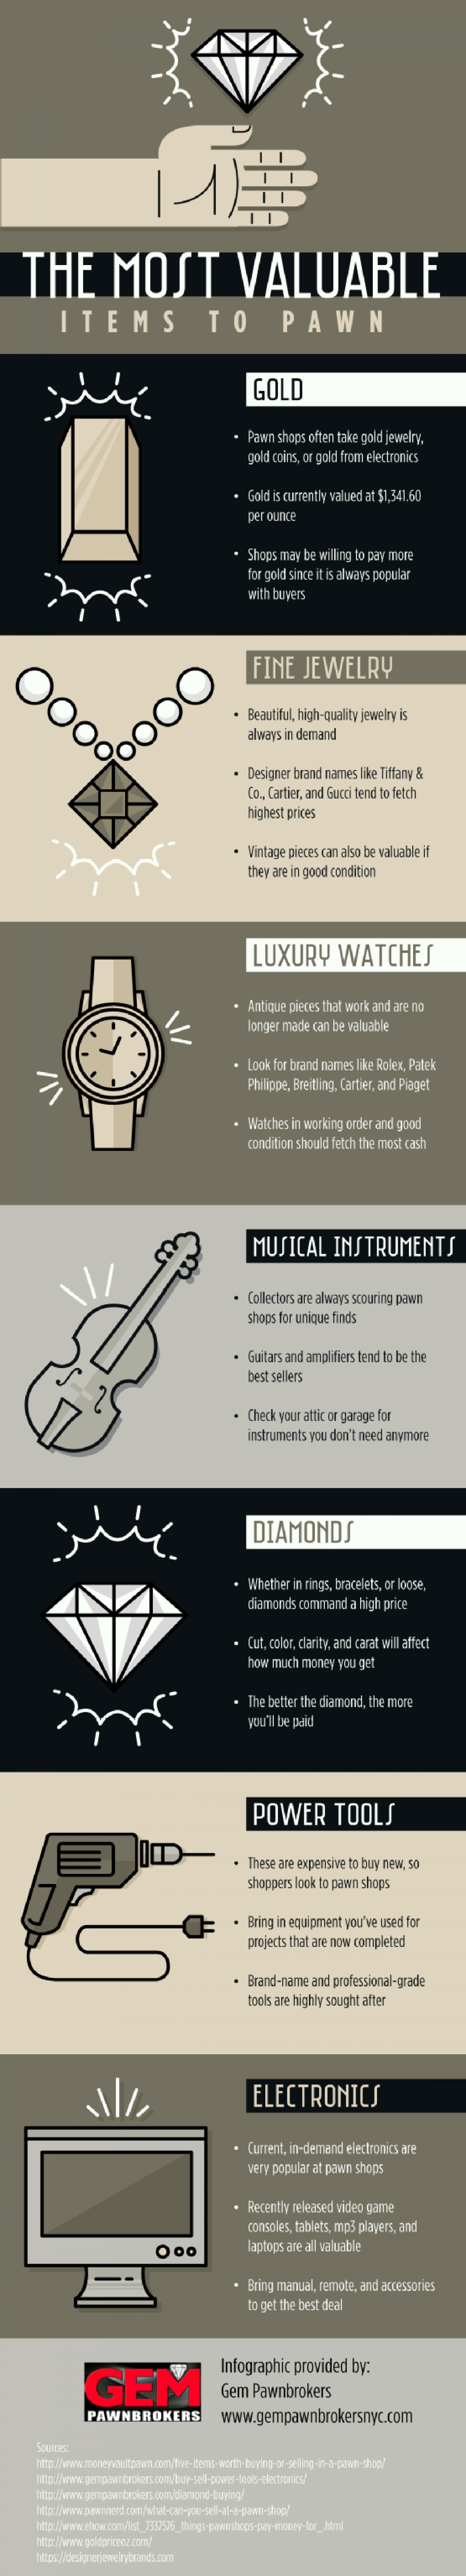 The Most Valuable Items to Pawn Infographic